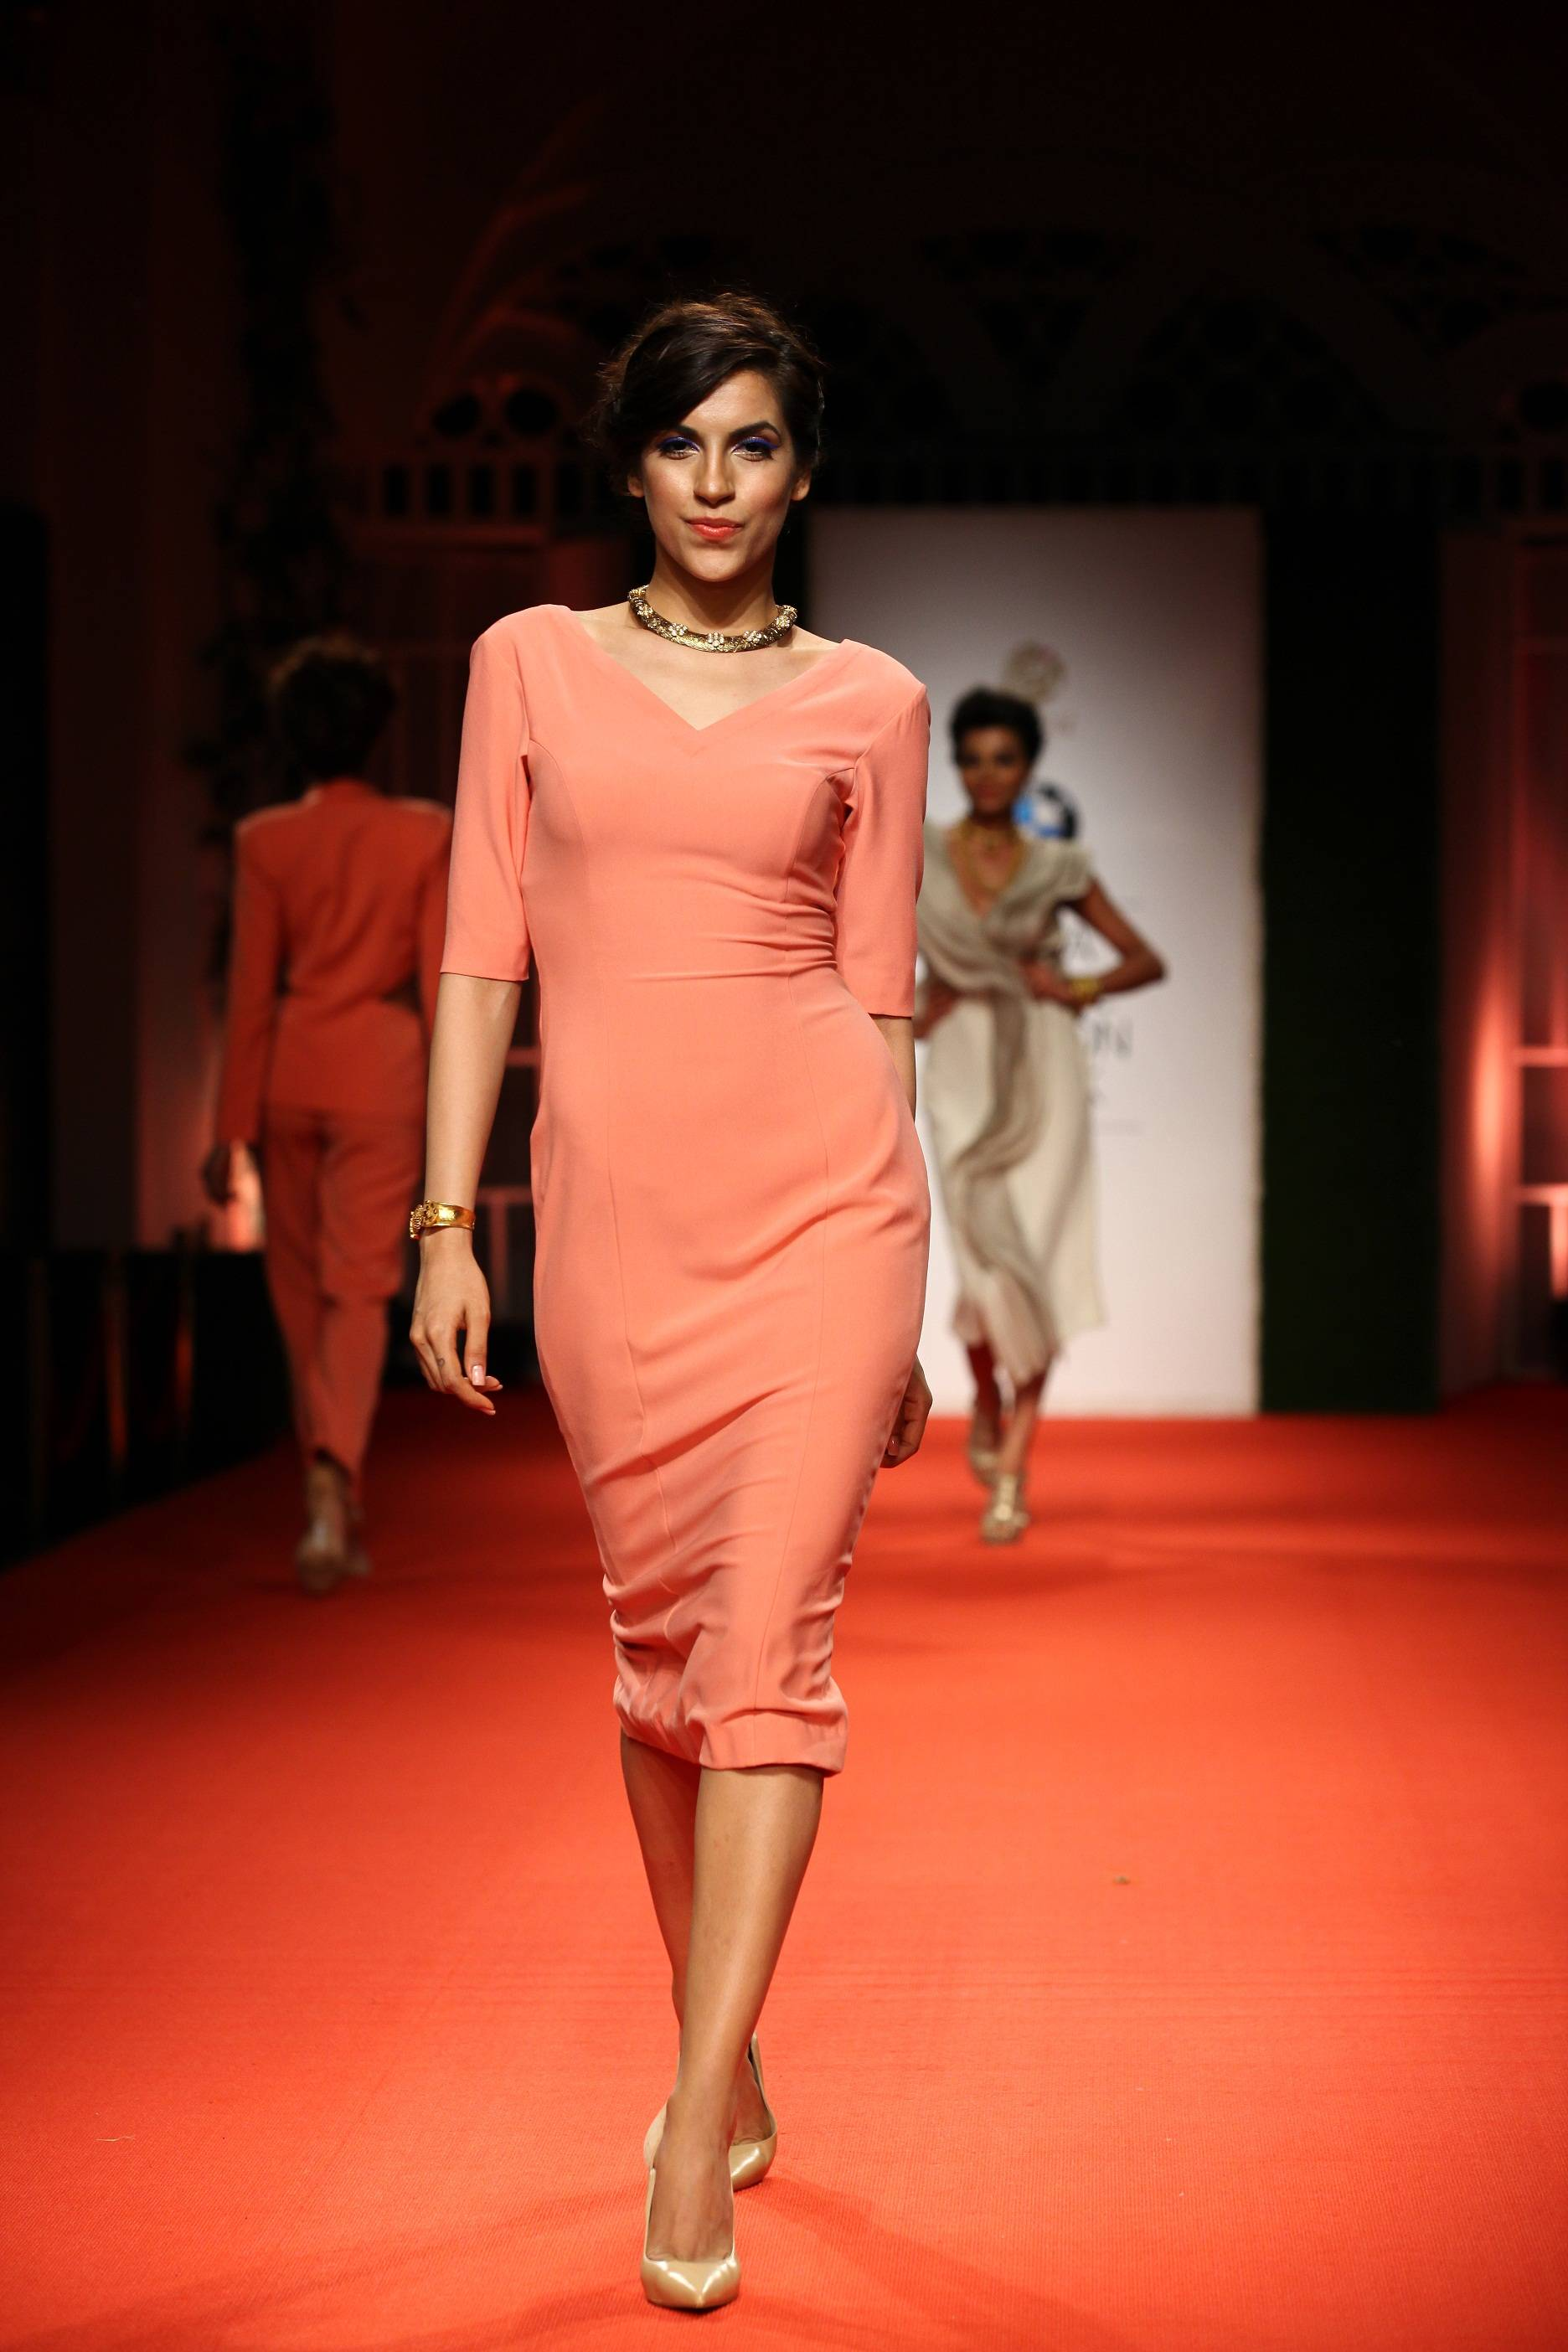 Azva Presents Gold Jewellery in its Most Elegant and Glamourous Avatar at BMW India Bridal Fashion Week 2014 in association with AZVA at DLF Emporio (2).jpg